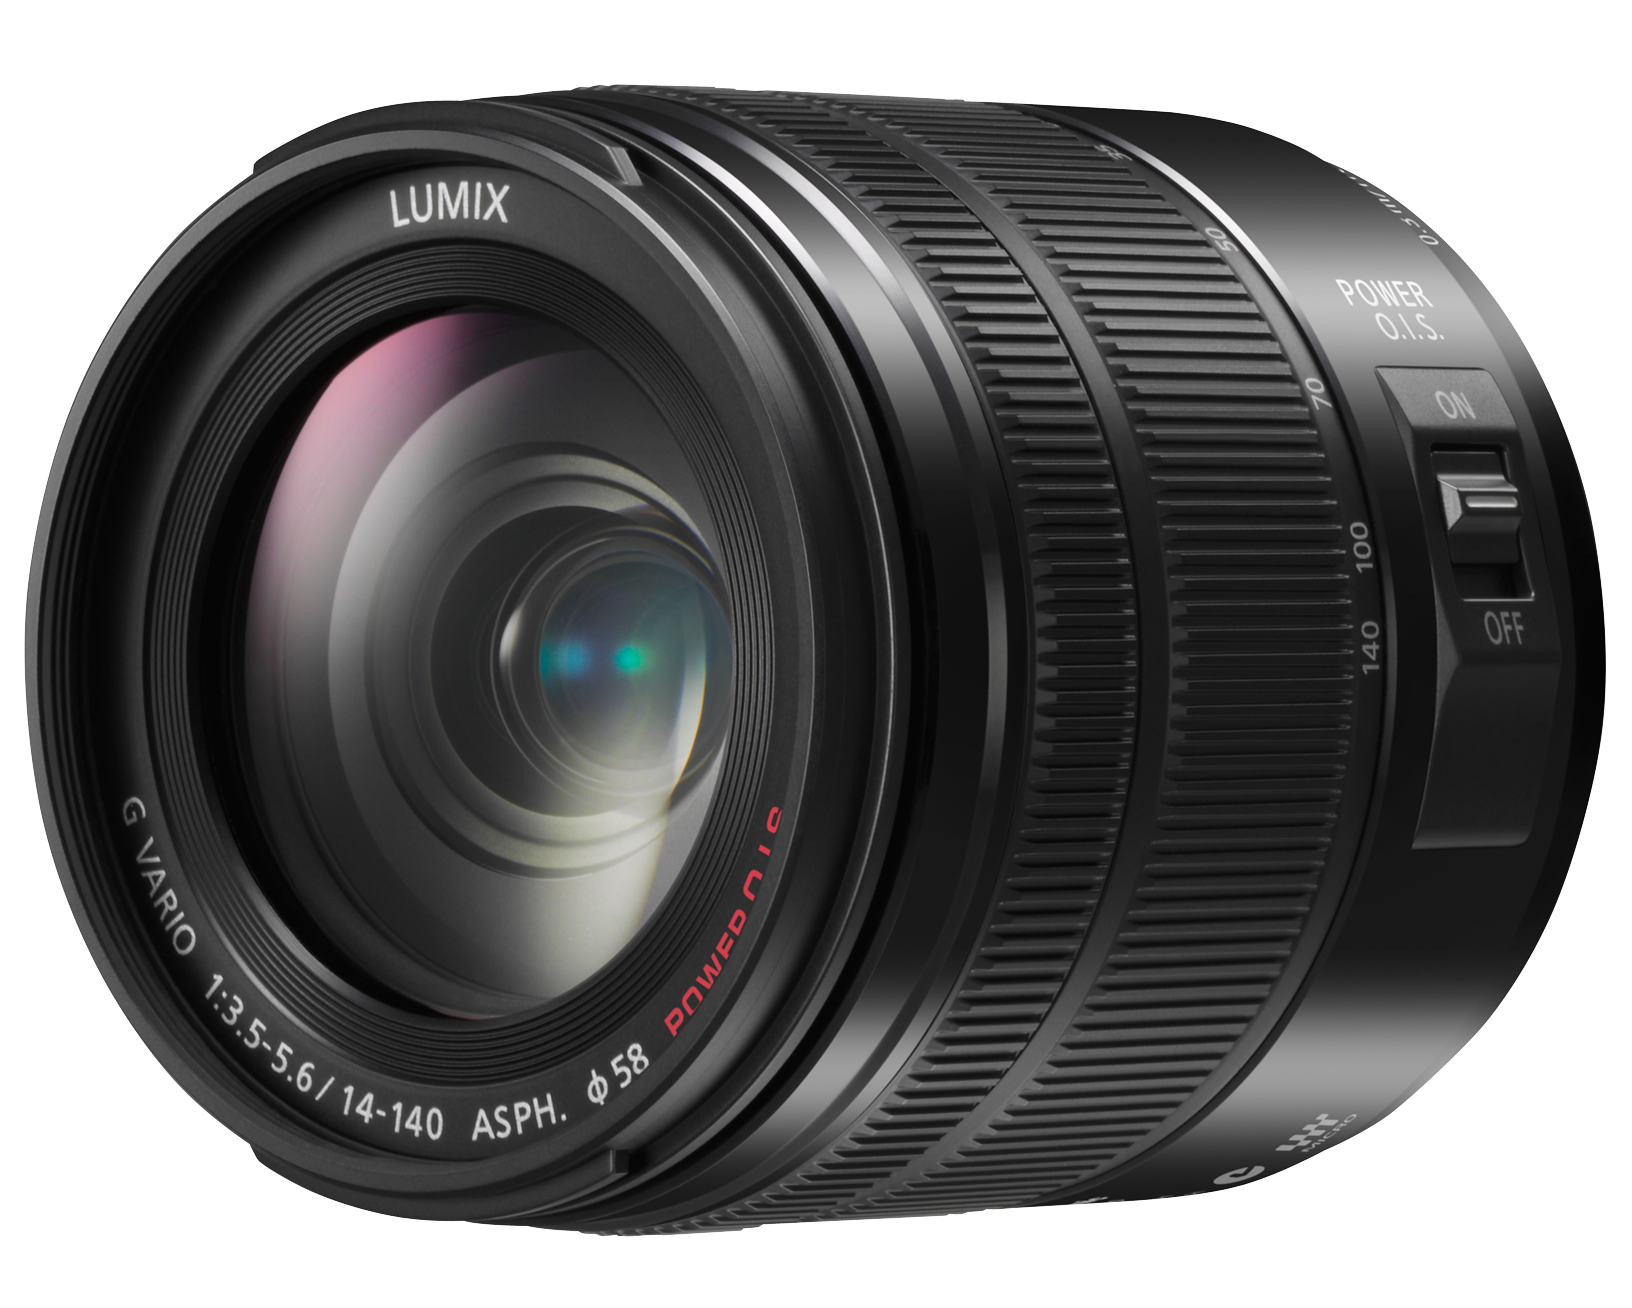 Panasonic Lumix G 14-140mm F3.5-5.6 Telephoto Zoom Lens for Micro Four Thirds System Undergoes Update